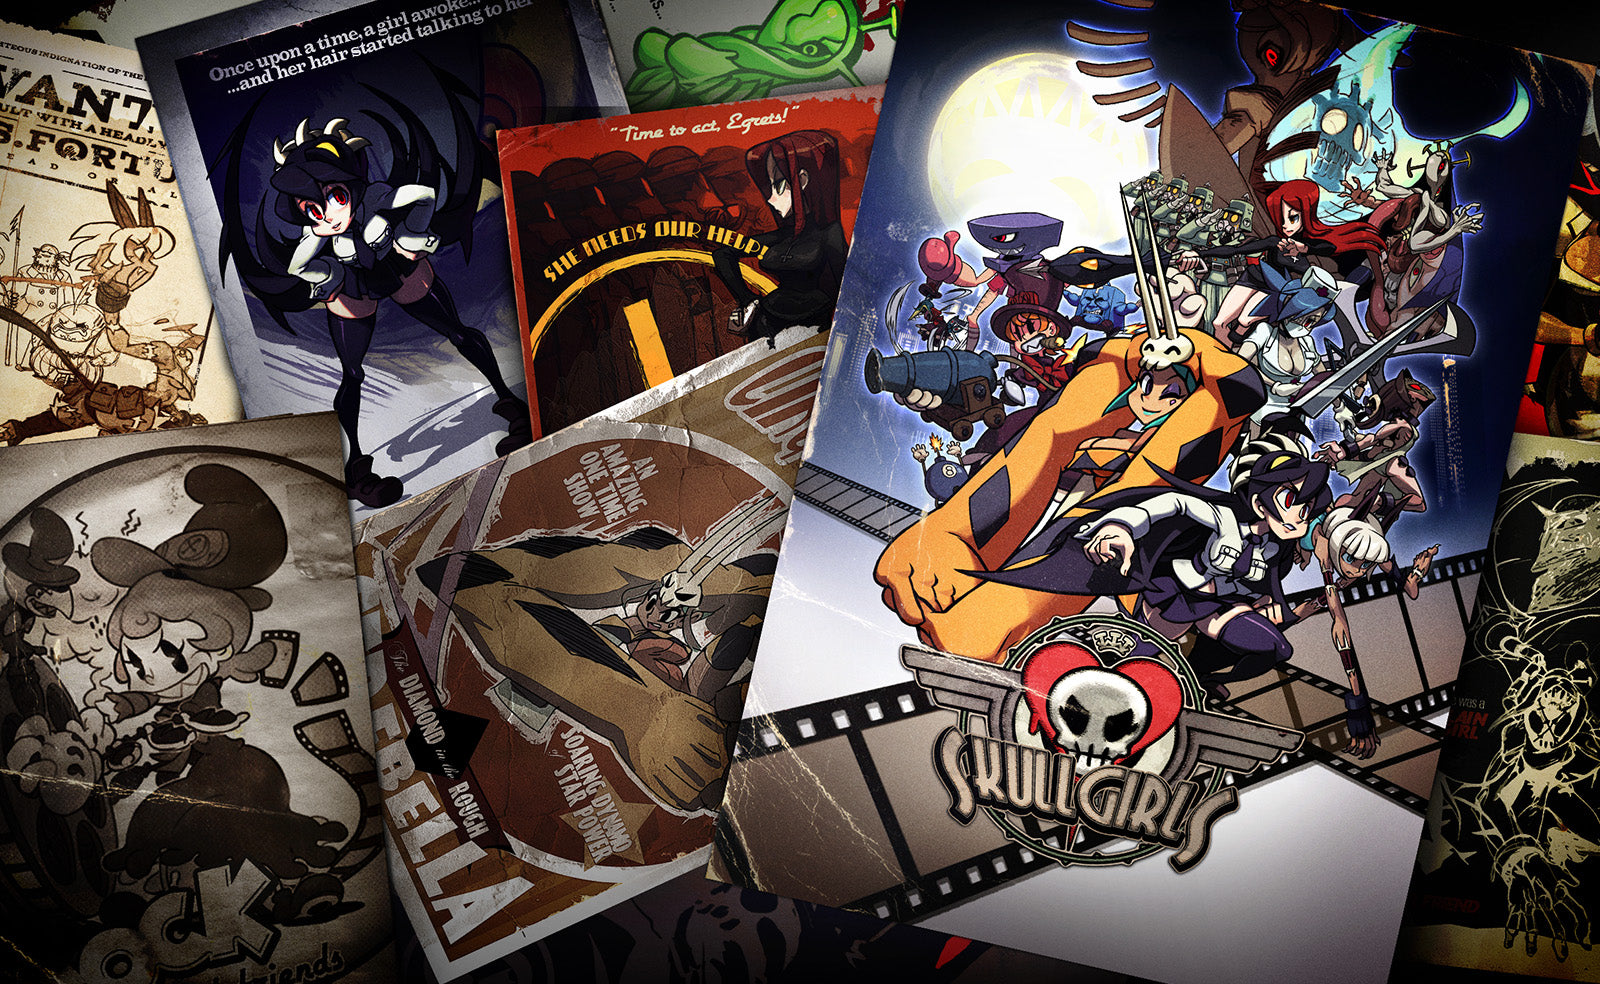 Play Skullgirls (and why you should)